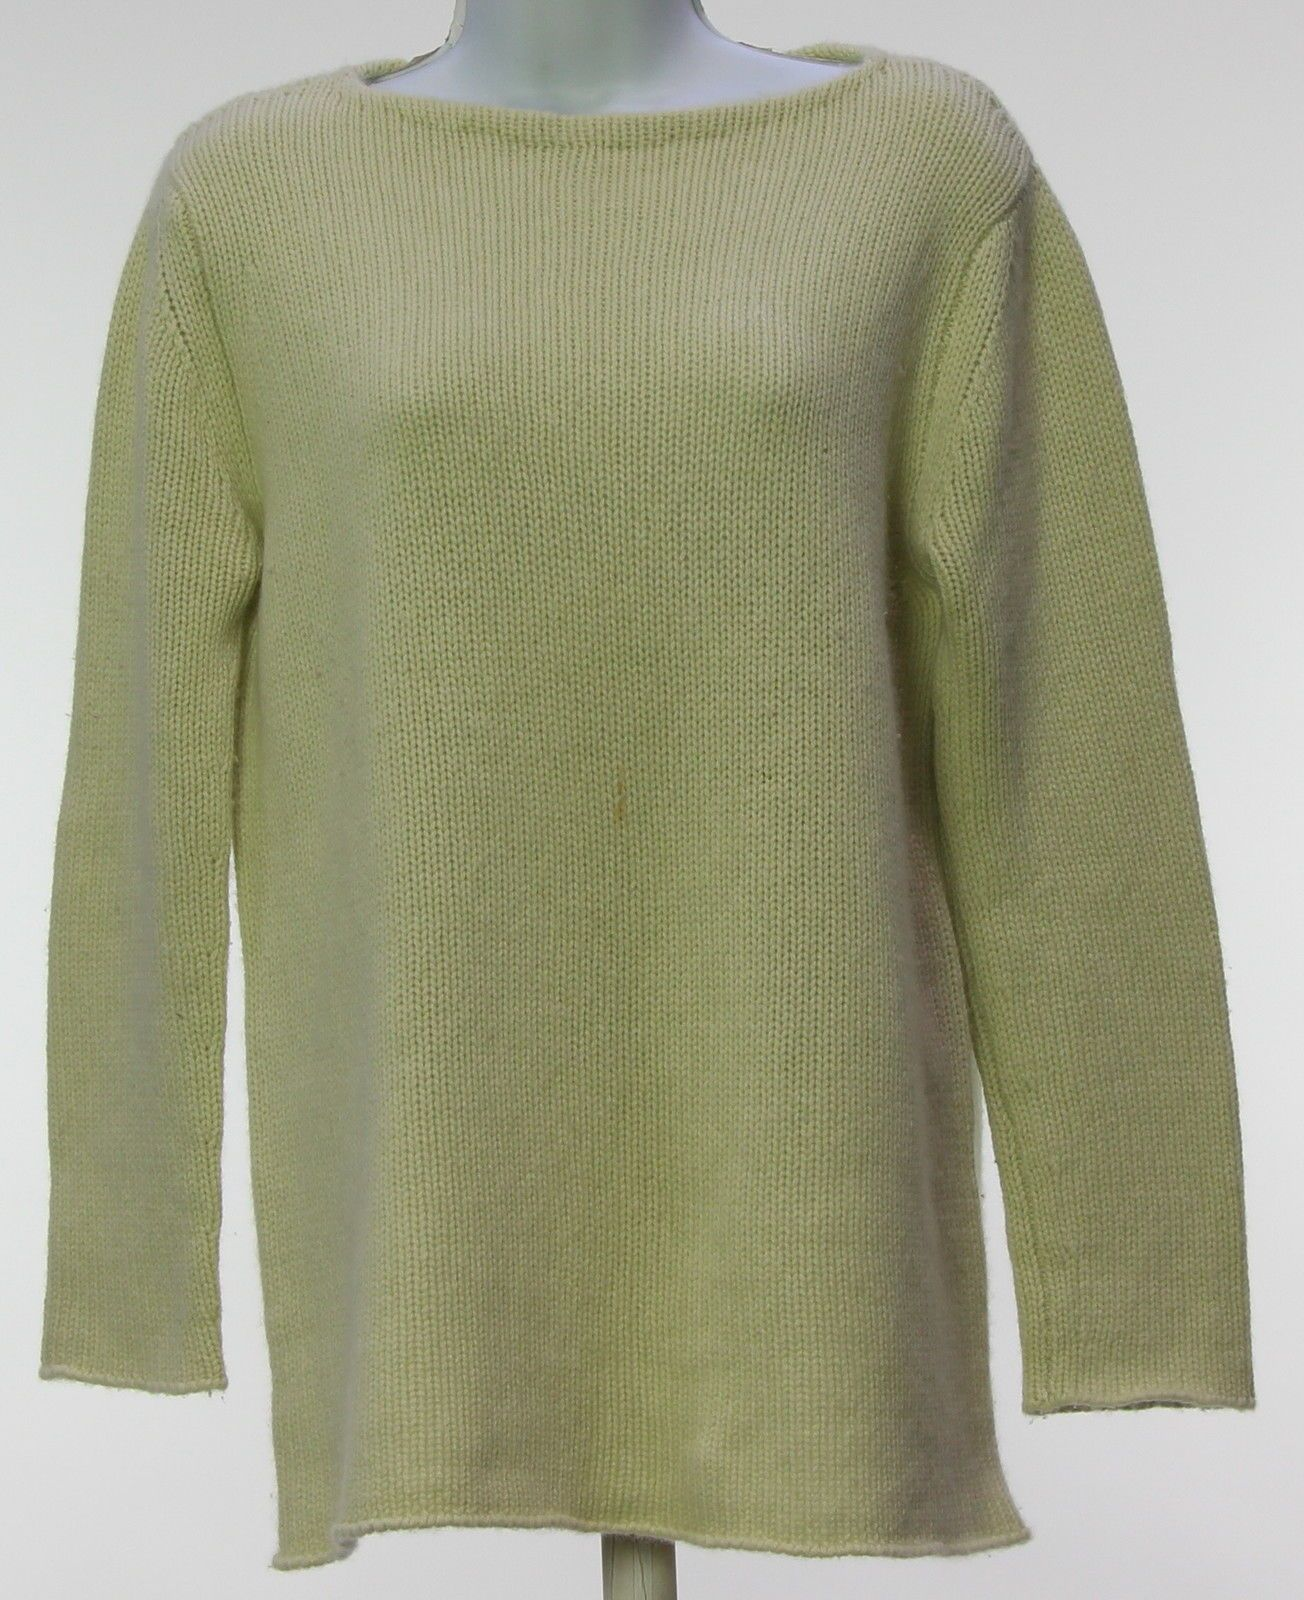 Womens NEIMAN MARCUS Light Green 100% Cashmere Sweater Size L ...